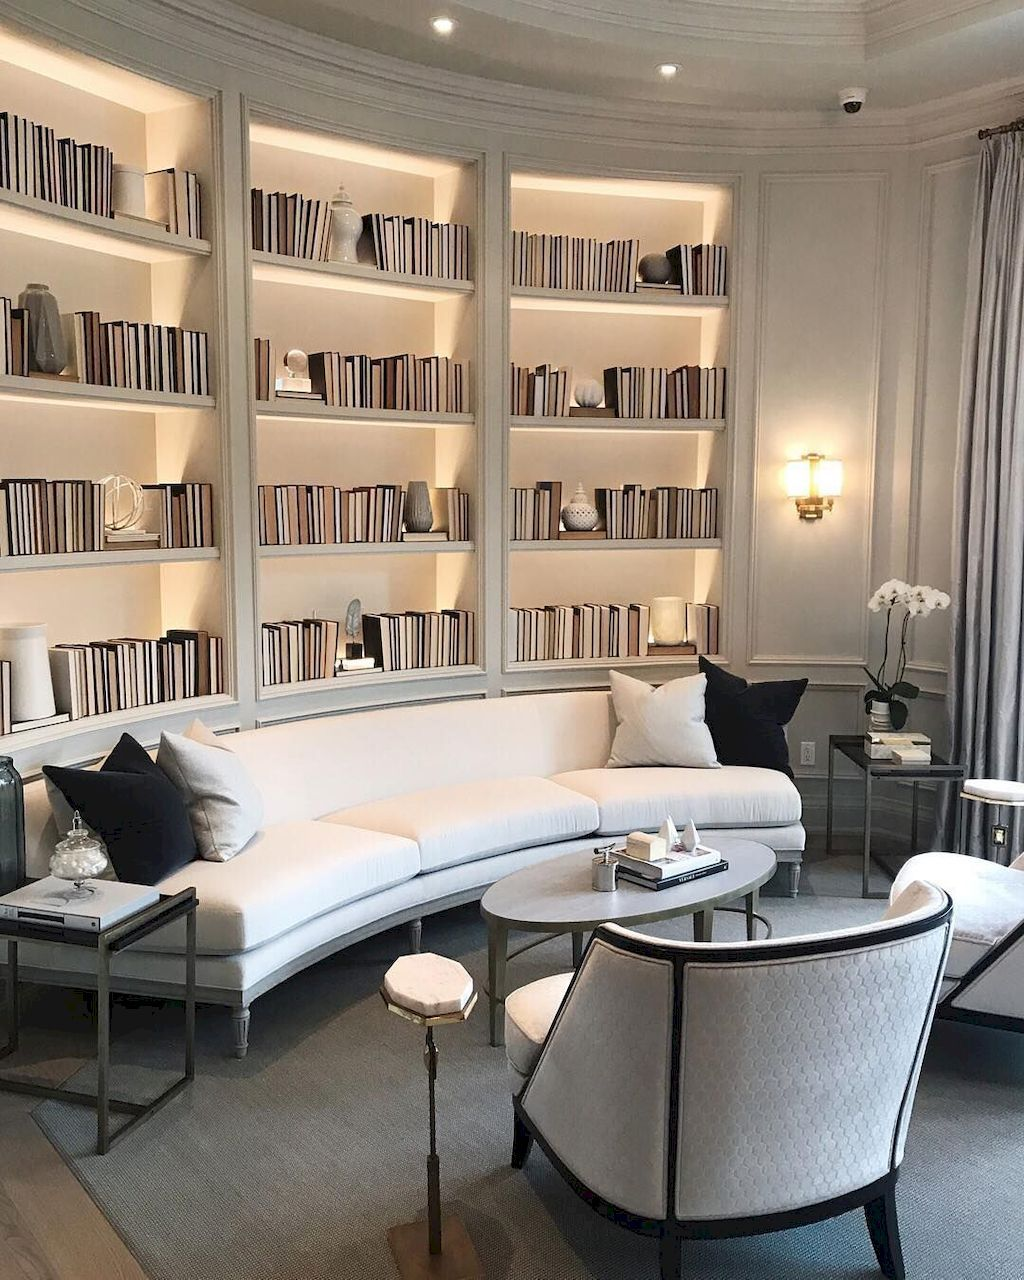 Cool apartment design ideas to your space for a more dynamic room https